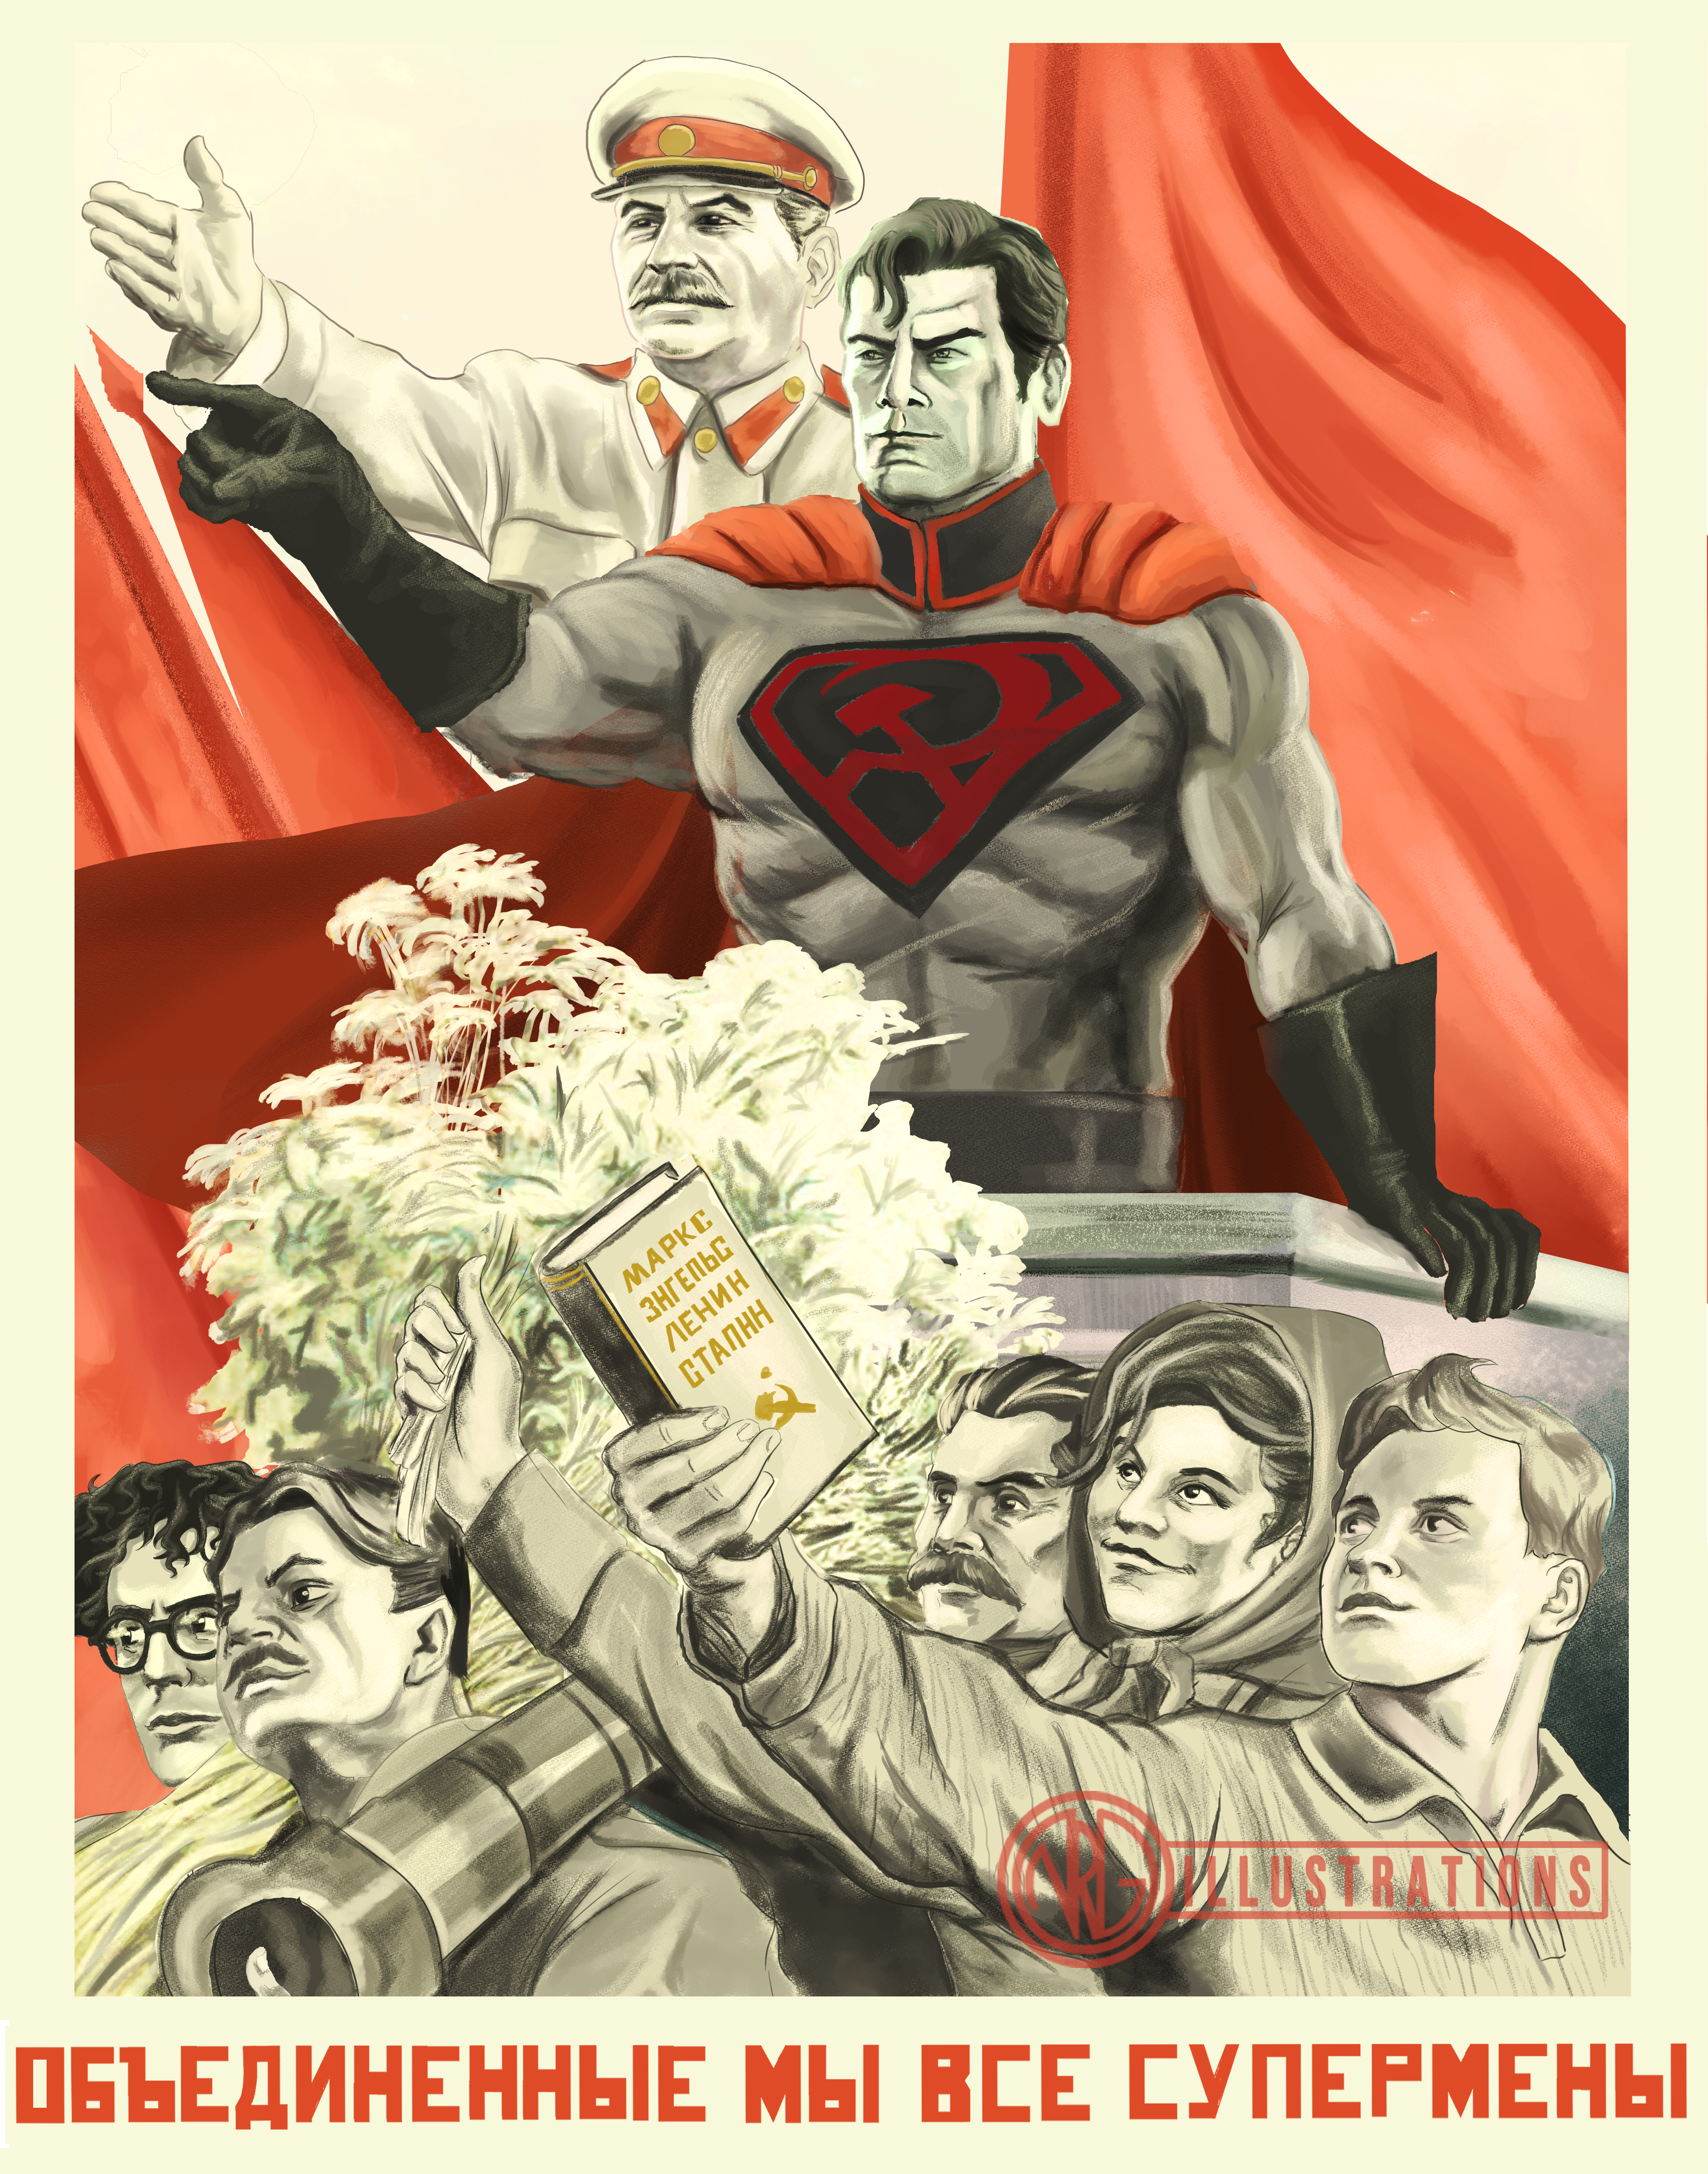 UNITED WE ARE ALL SUPERMEN